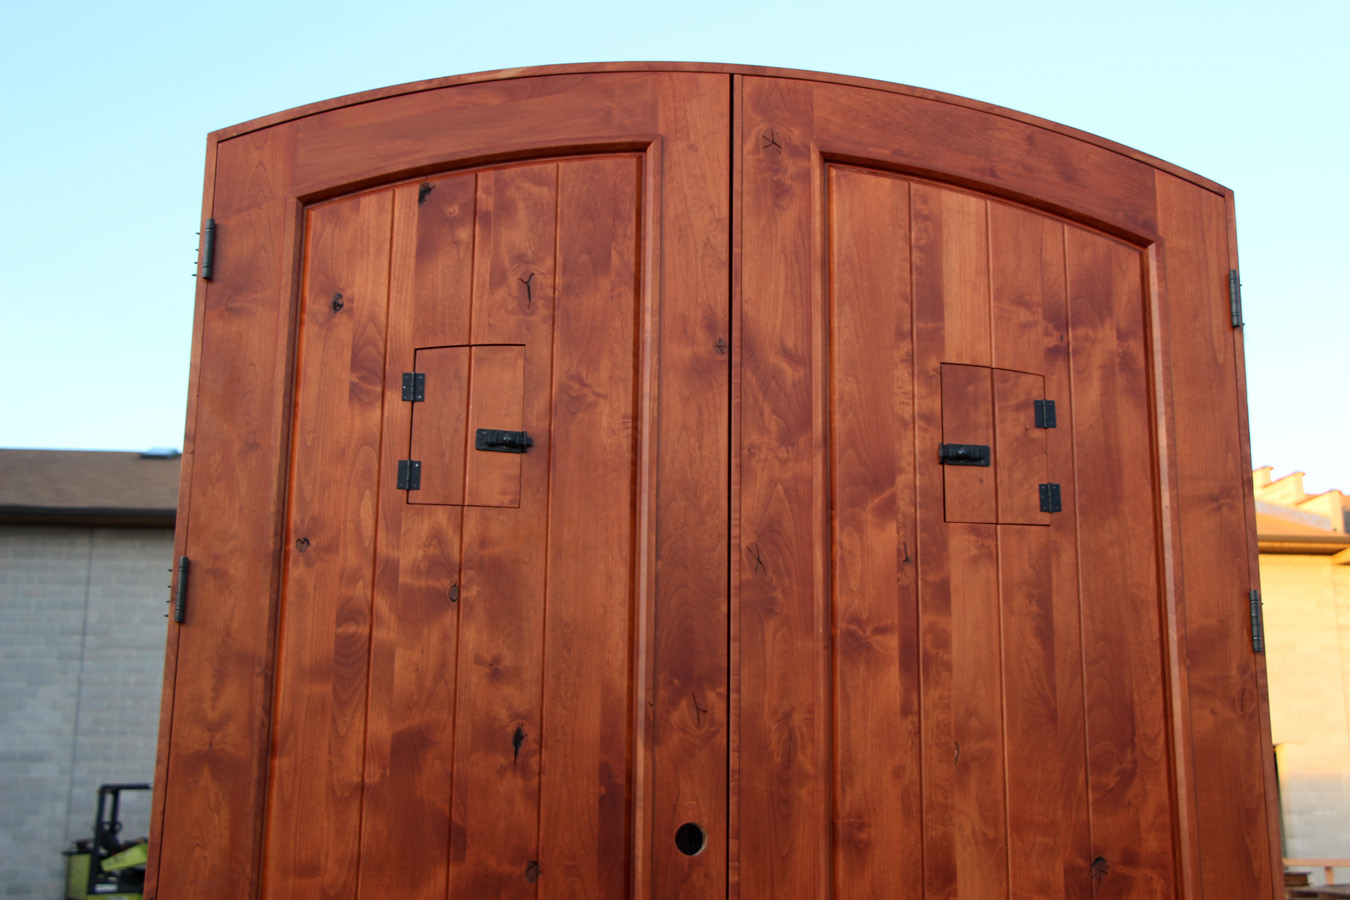 900 #BC860F Arched Rustic Double Door Speakeasy Closed pic Arched Double Front Doors 42711350